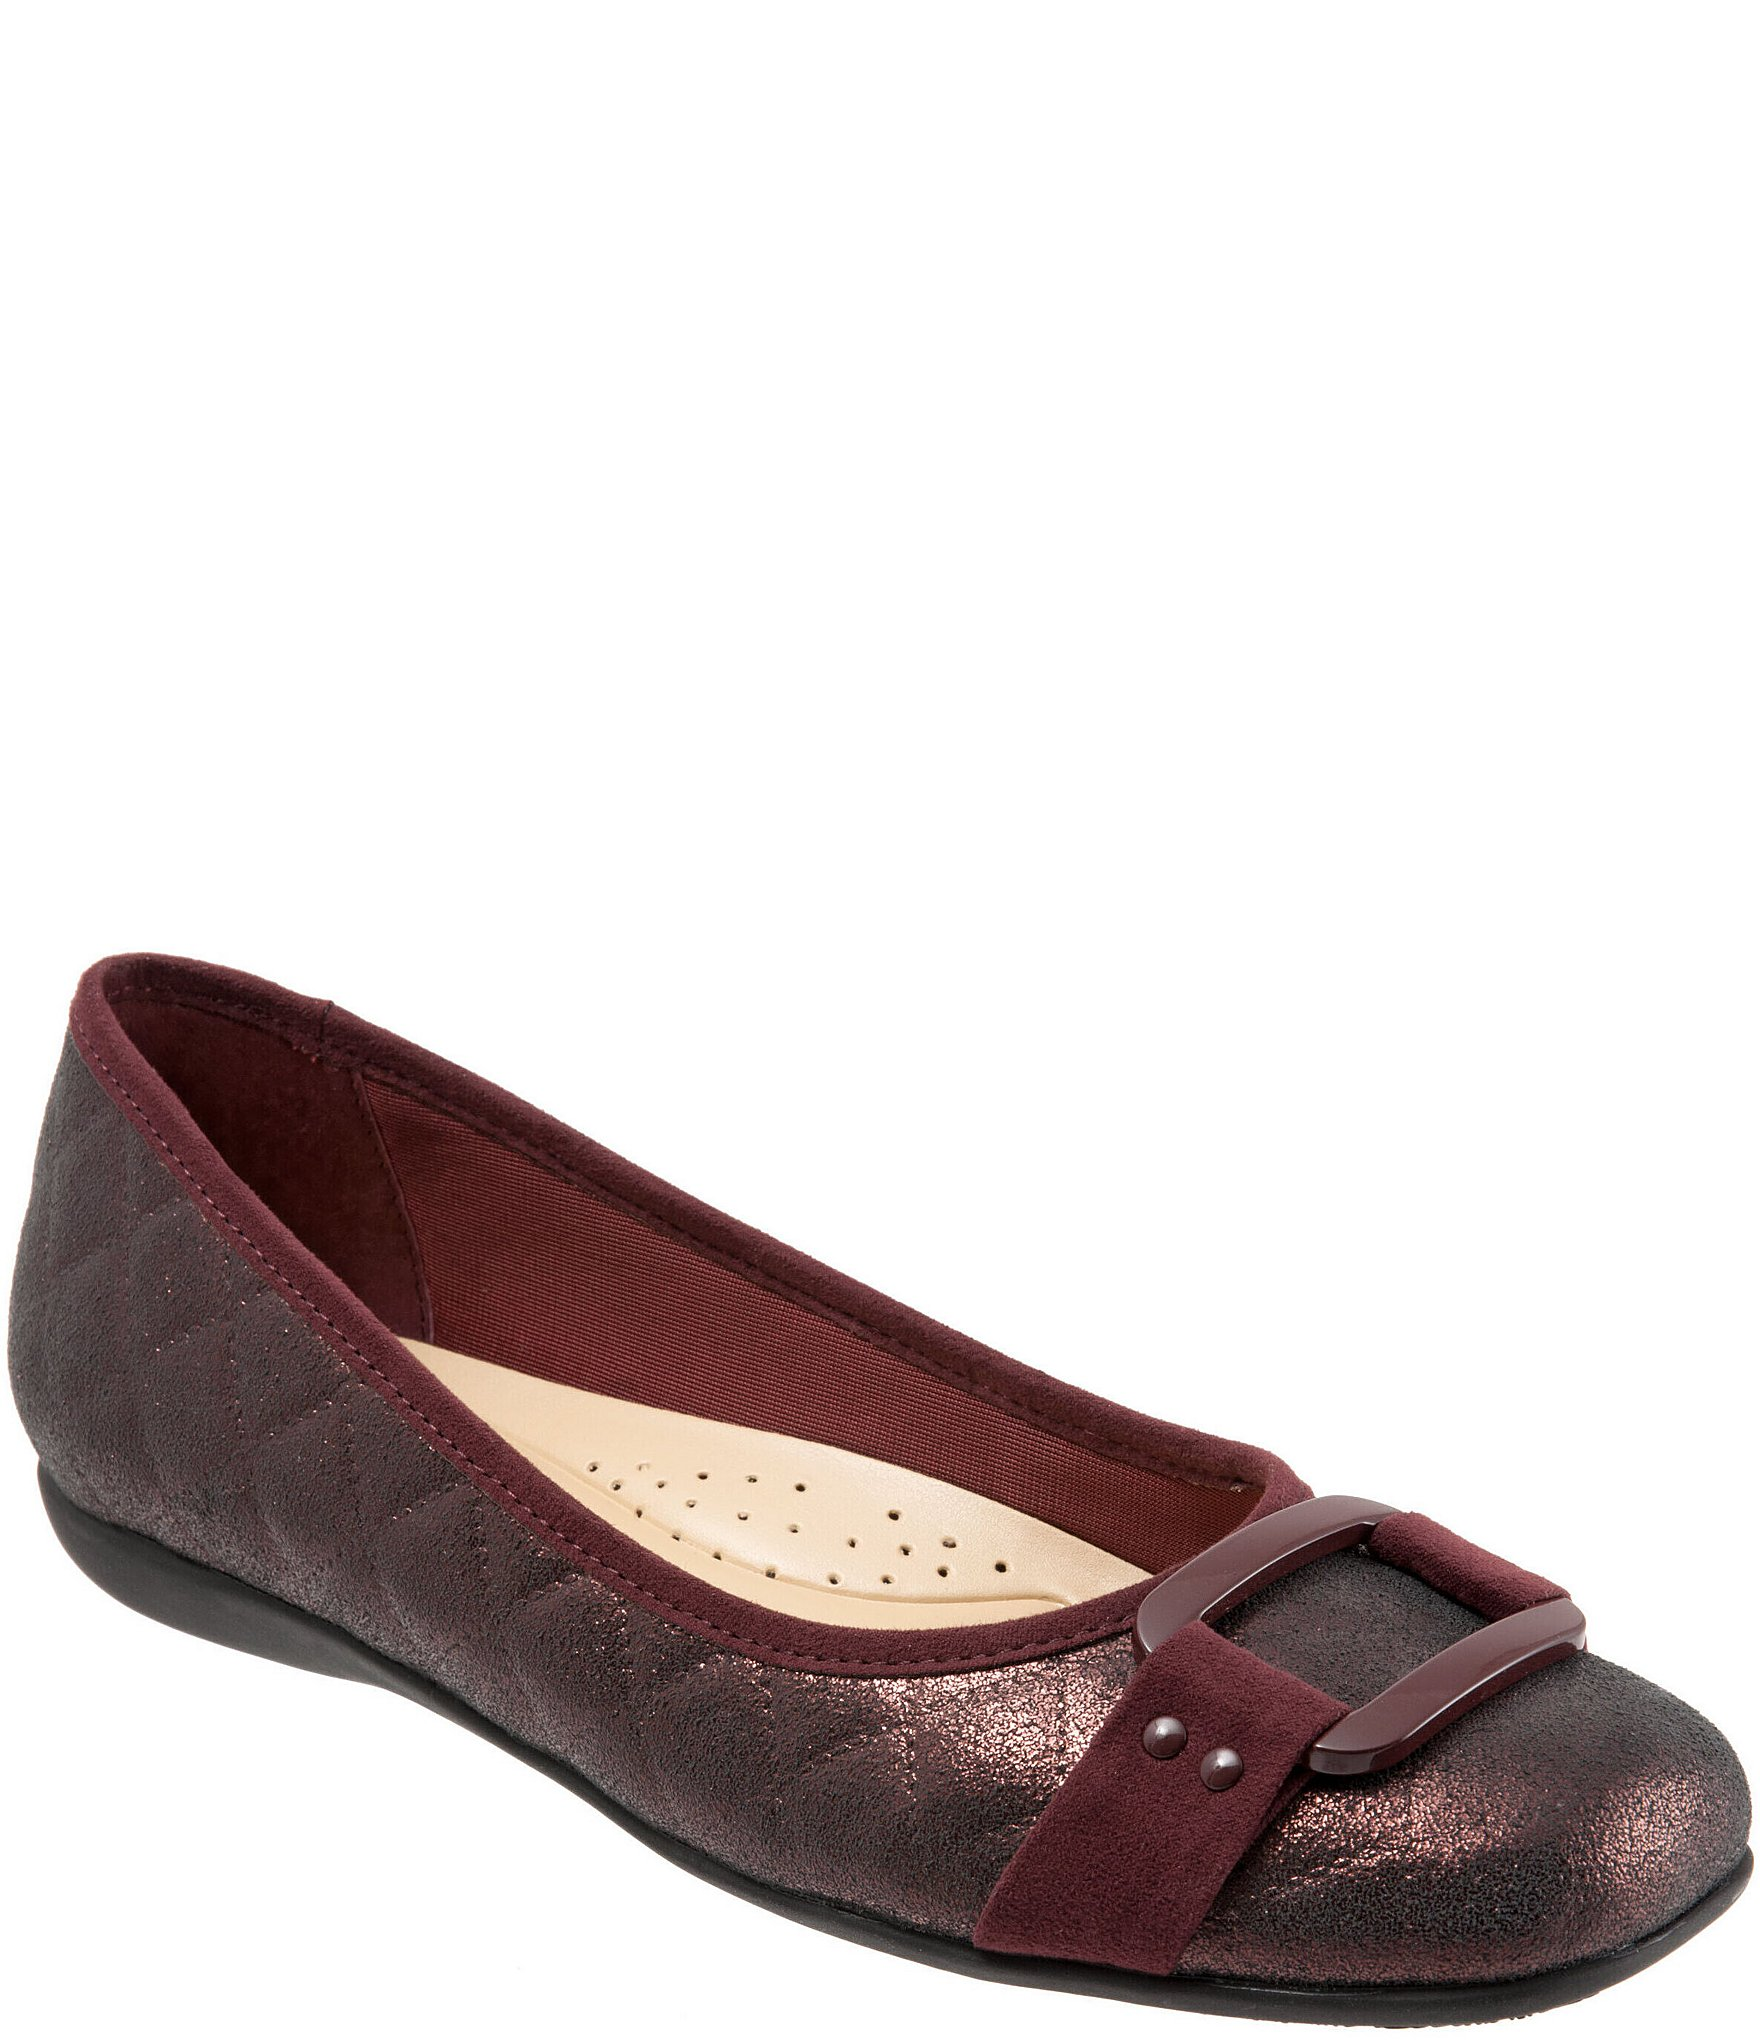 Trotters Sizzle Quilted Leather and Suede Ballerina Flats CX0k3i